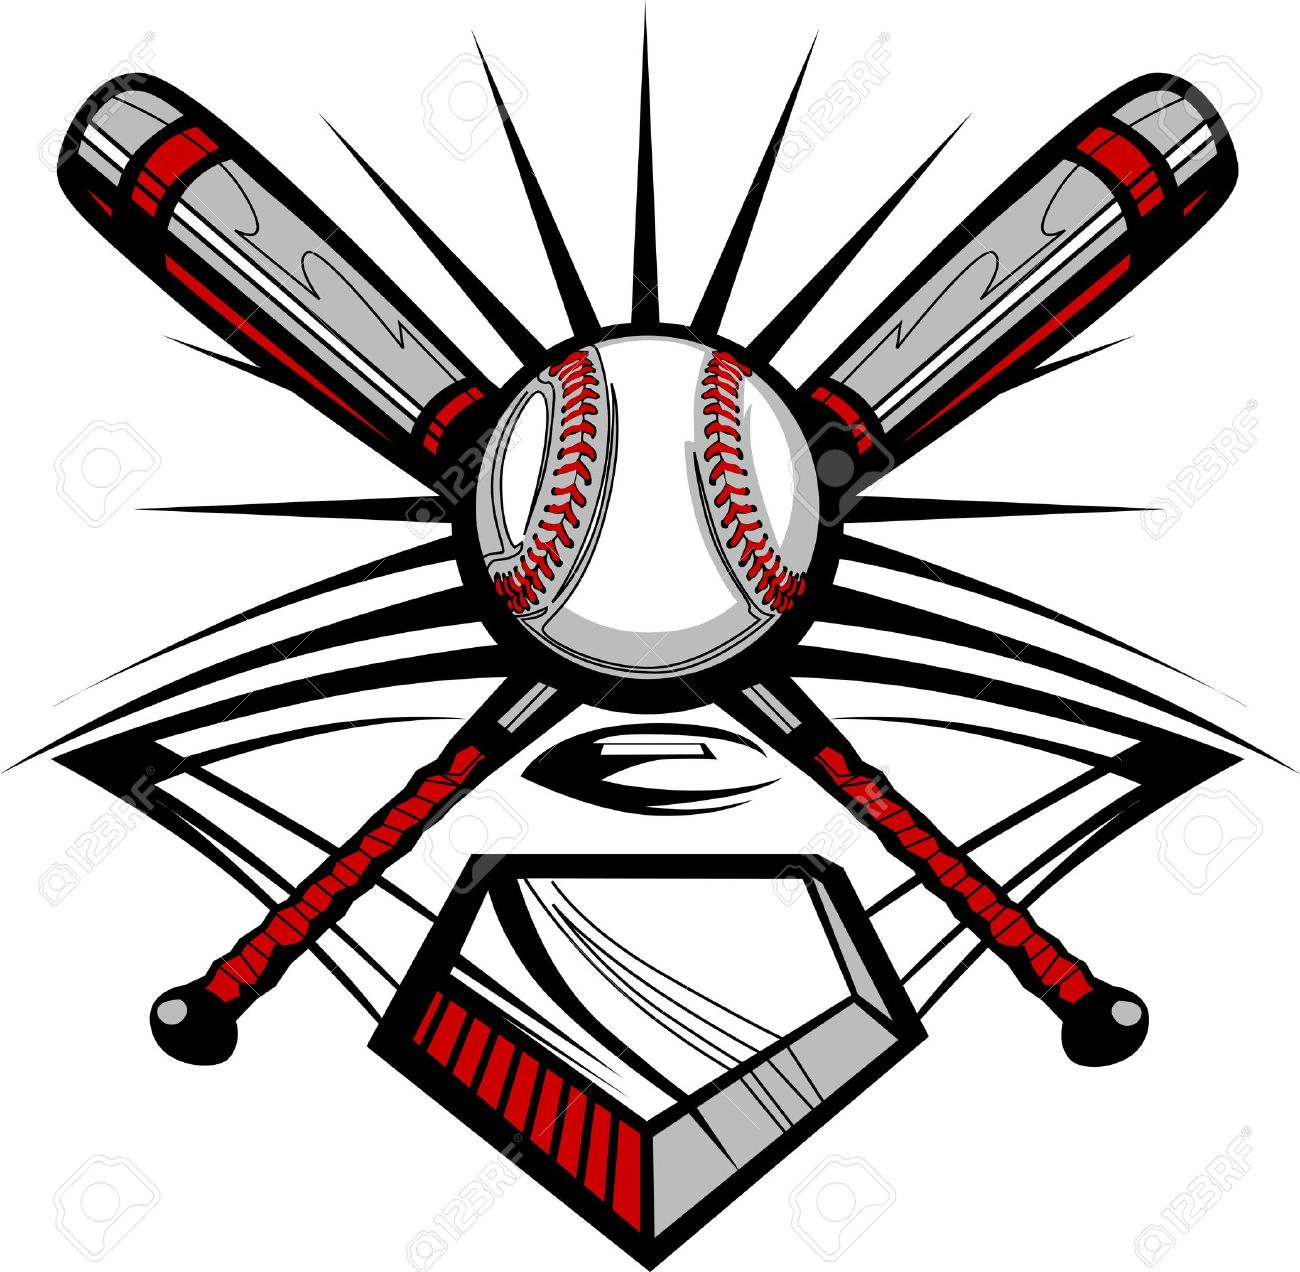 9,809 Baseball Bat Cliparts, Stock Vector And Royalty Free ...